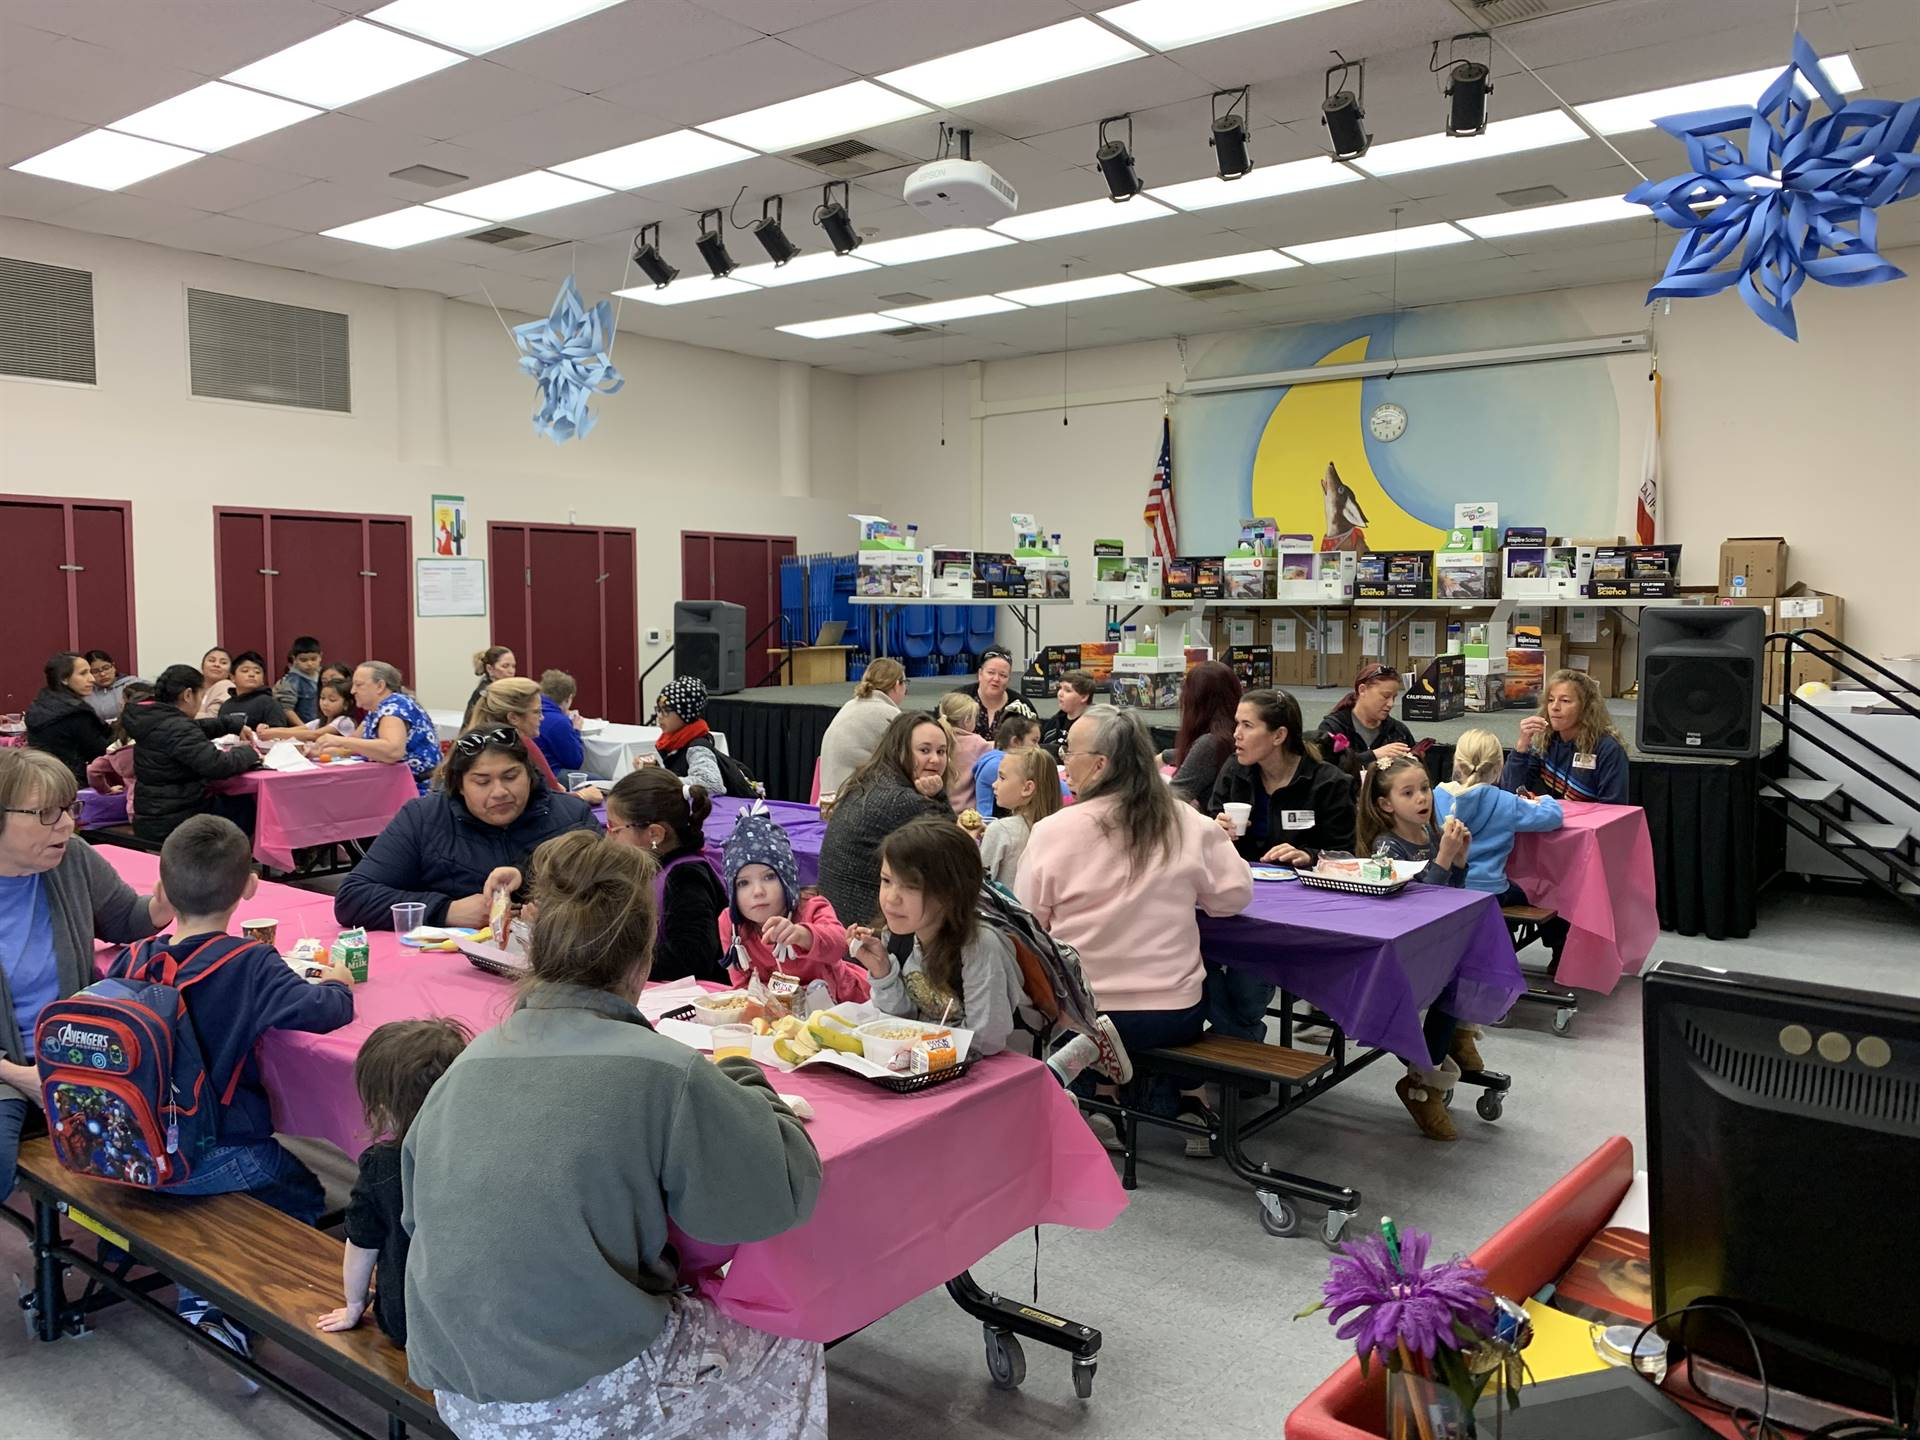 Moms and students gather for Muffins for Moms at LES